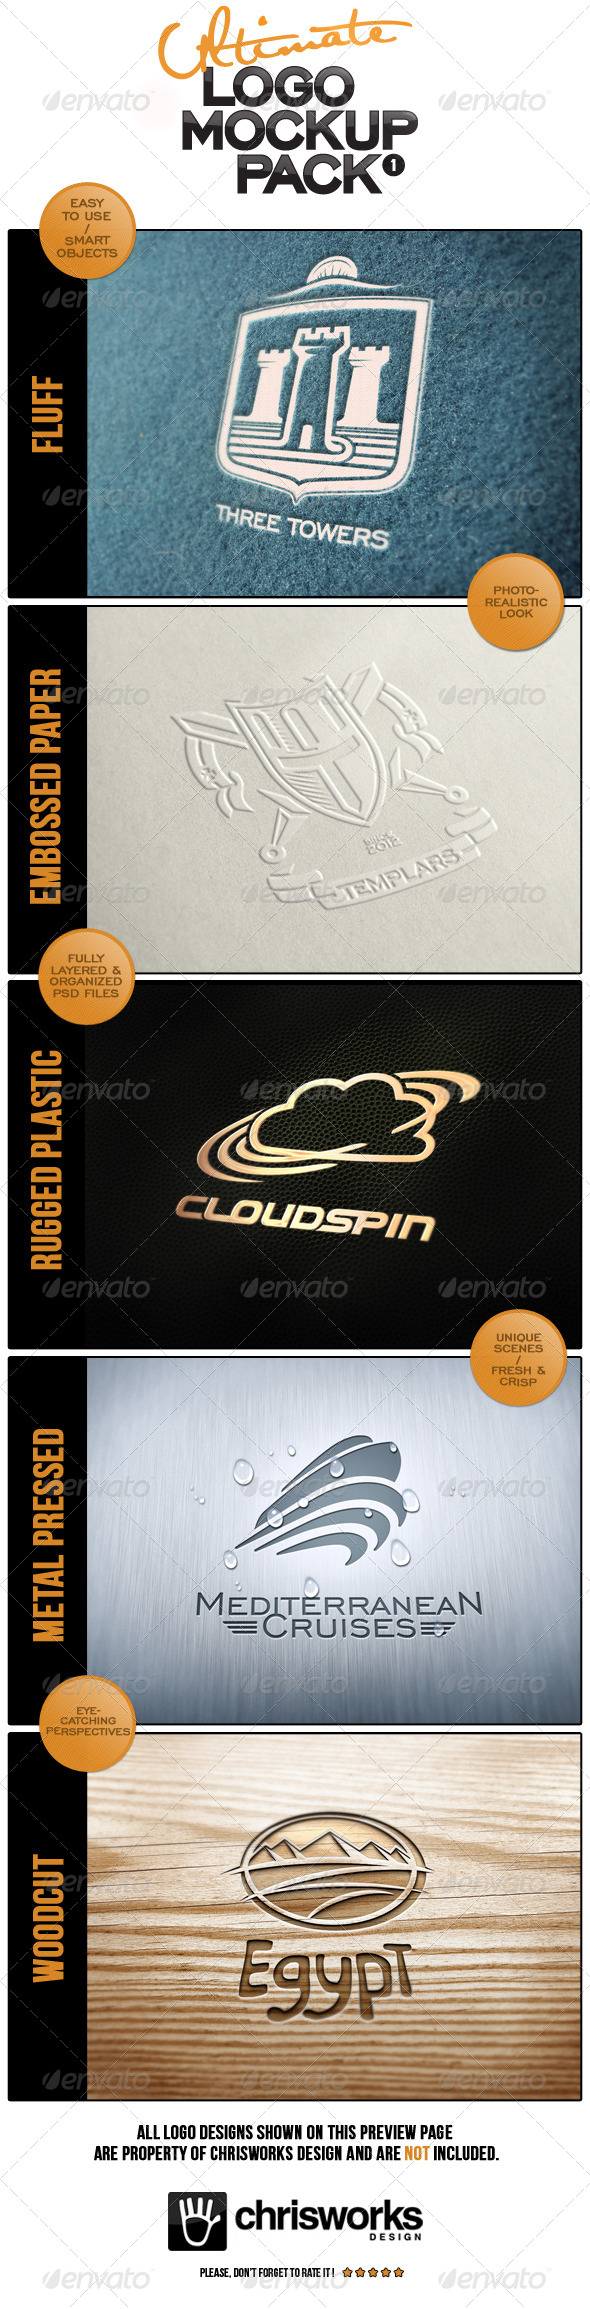 GraphicRiver Ultimate Logo Mock-Up Pack 4570979